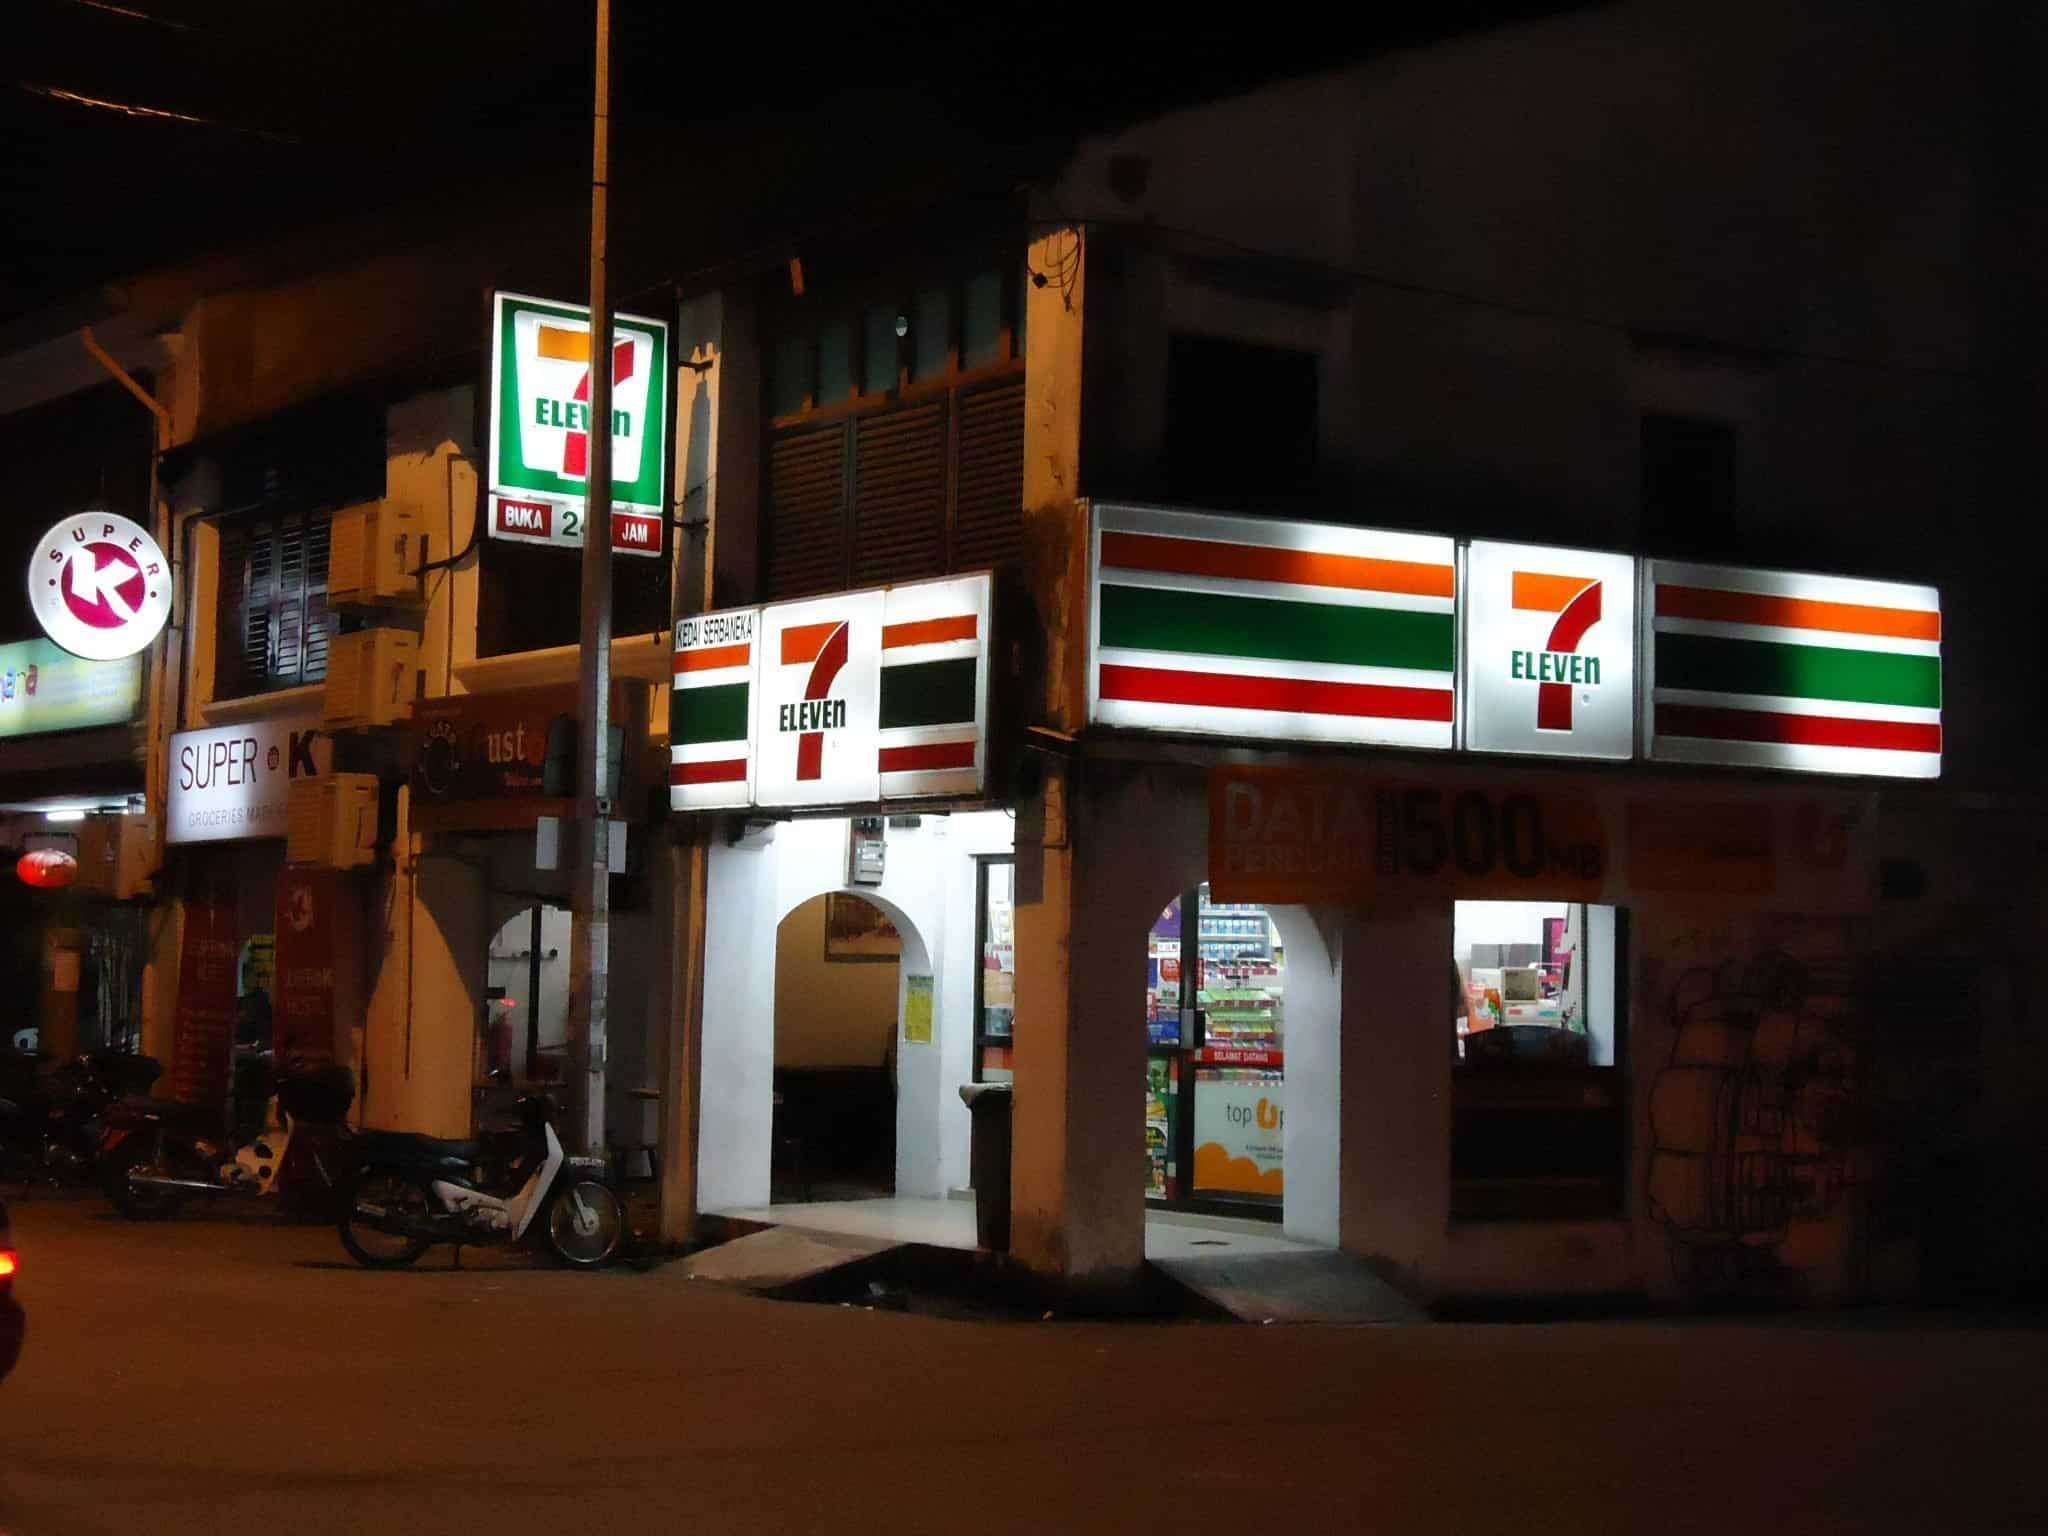 7 eleven 3102k followers, 38 following, 720 posts - see instagram photos and videos from 7-eleven (@7eleven).